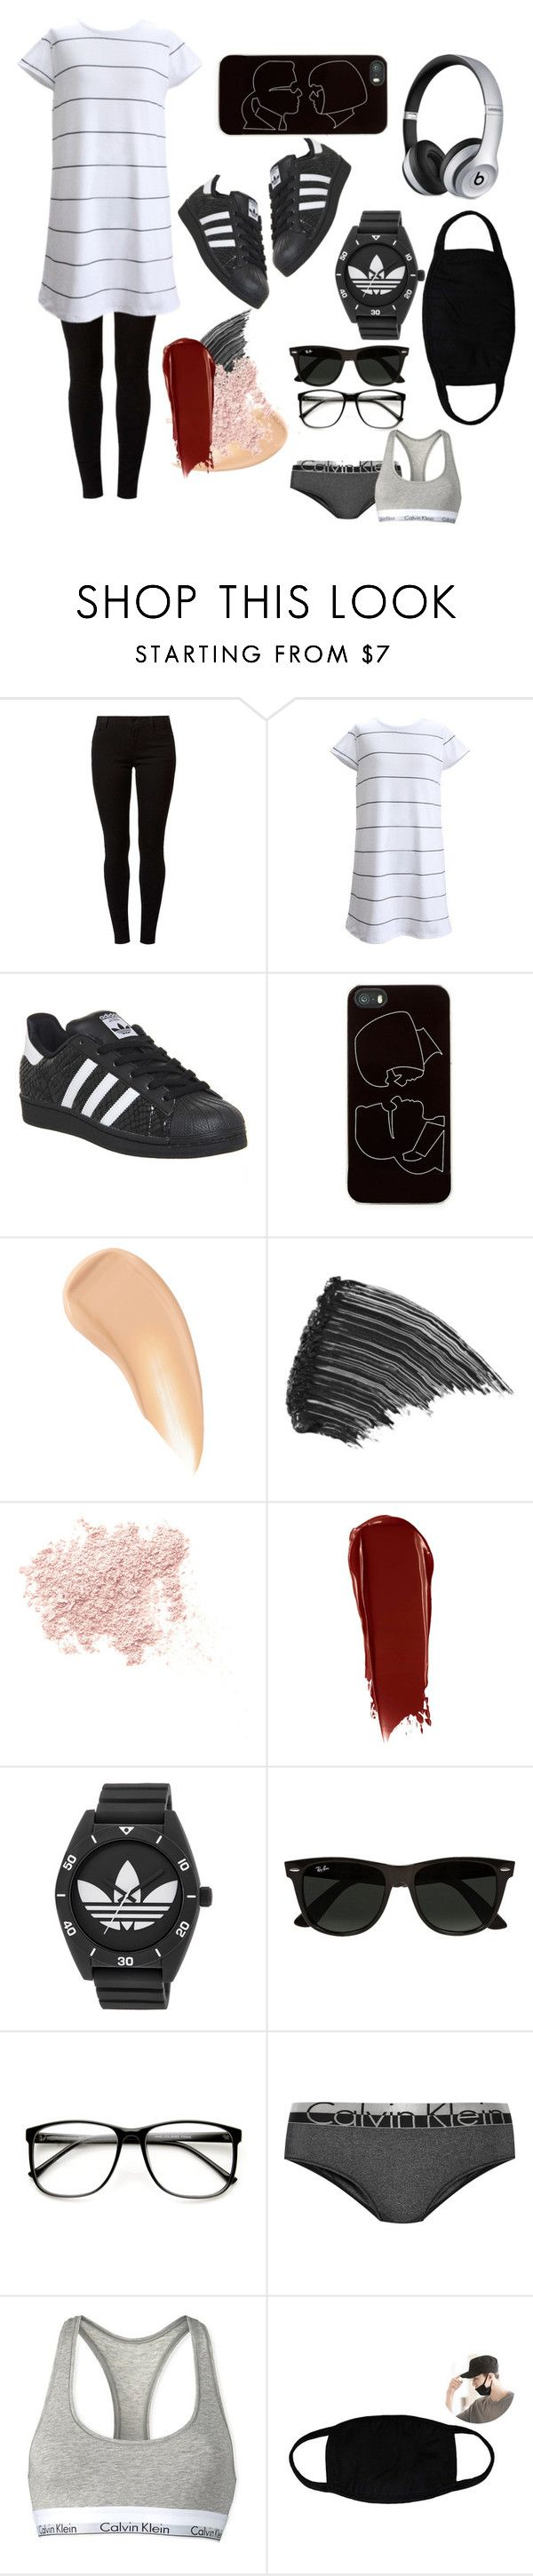 """jhs - jung hoseok style(gf)"" by wangass ❤ liked on Polyvore featuring beauty, Dorothy Perkins, adidas, Zero Gravity, Charlotte Tilbury, LashFood, Bare Escentuals, NARS Cosmetics, Ray-Ban and Calvin Klein Underwear"